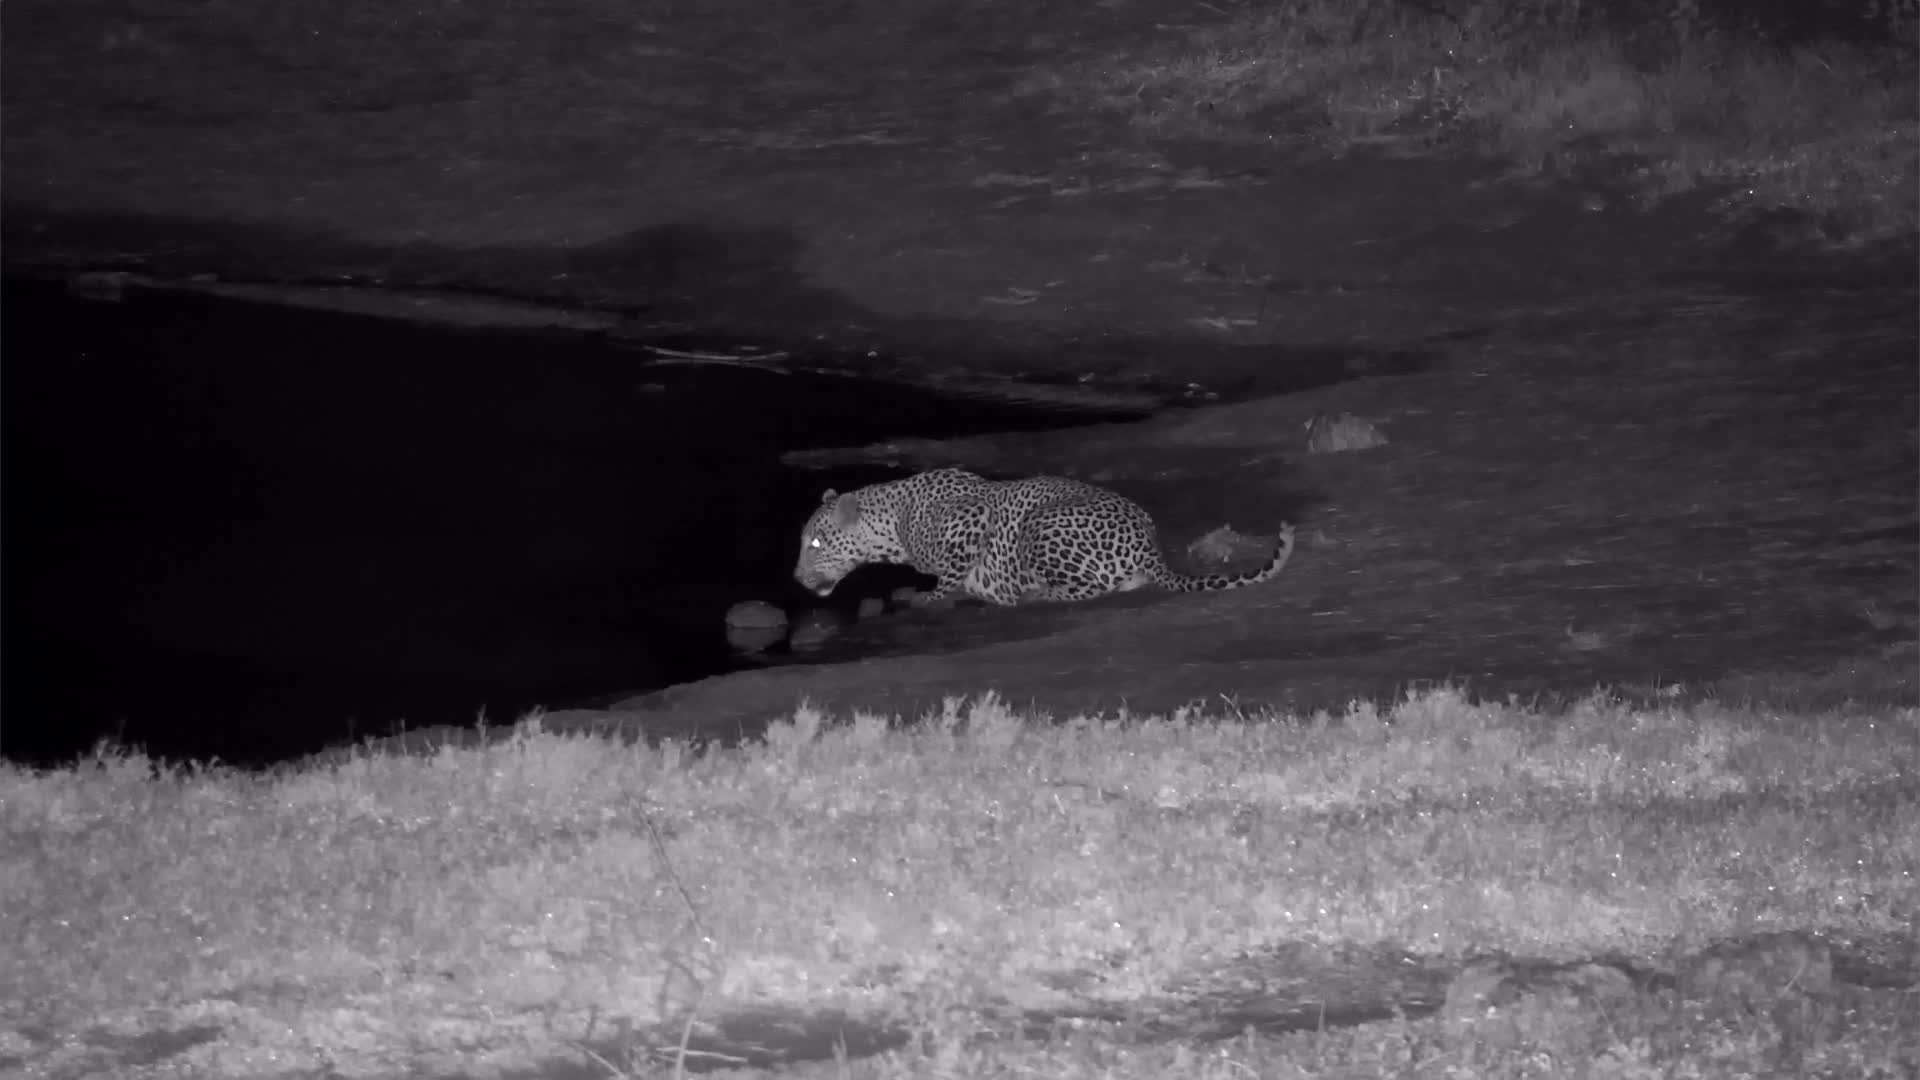 VIDEO: Leopard at the waterhole for a drink before wandering off